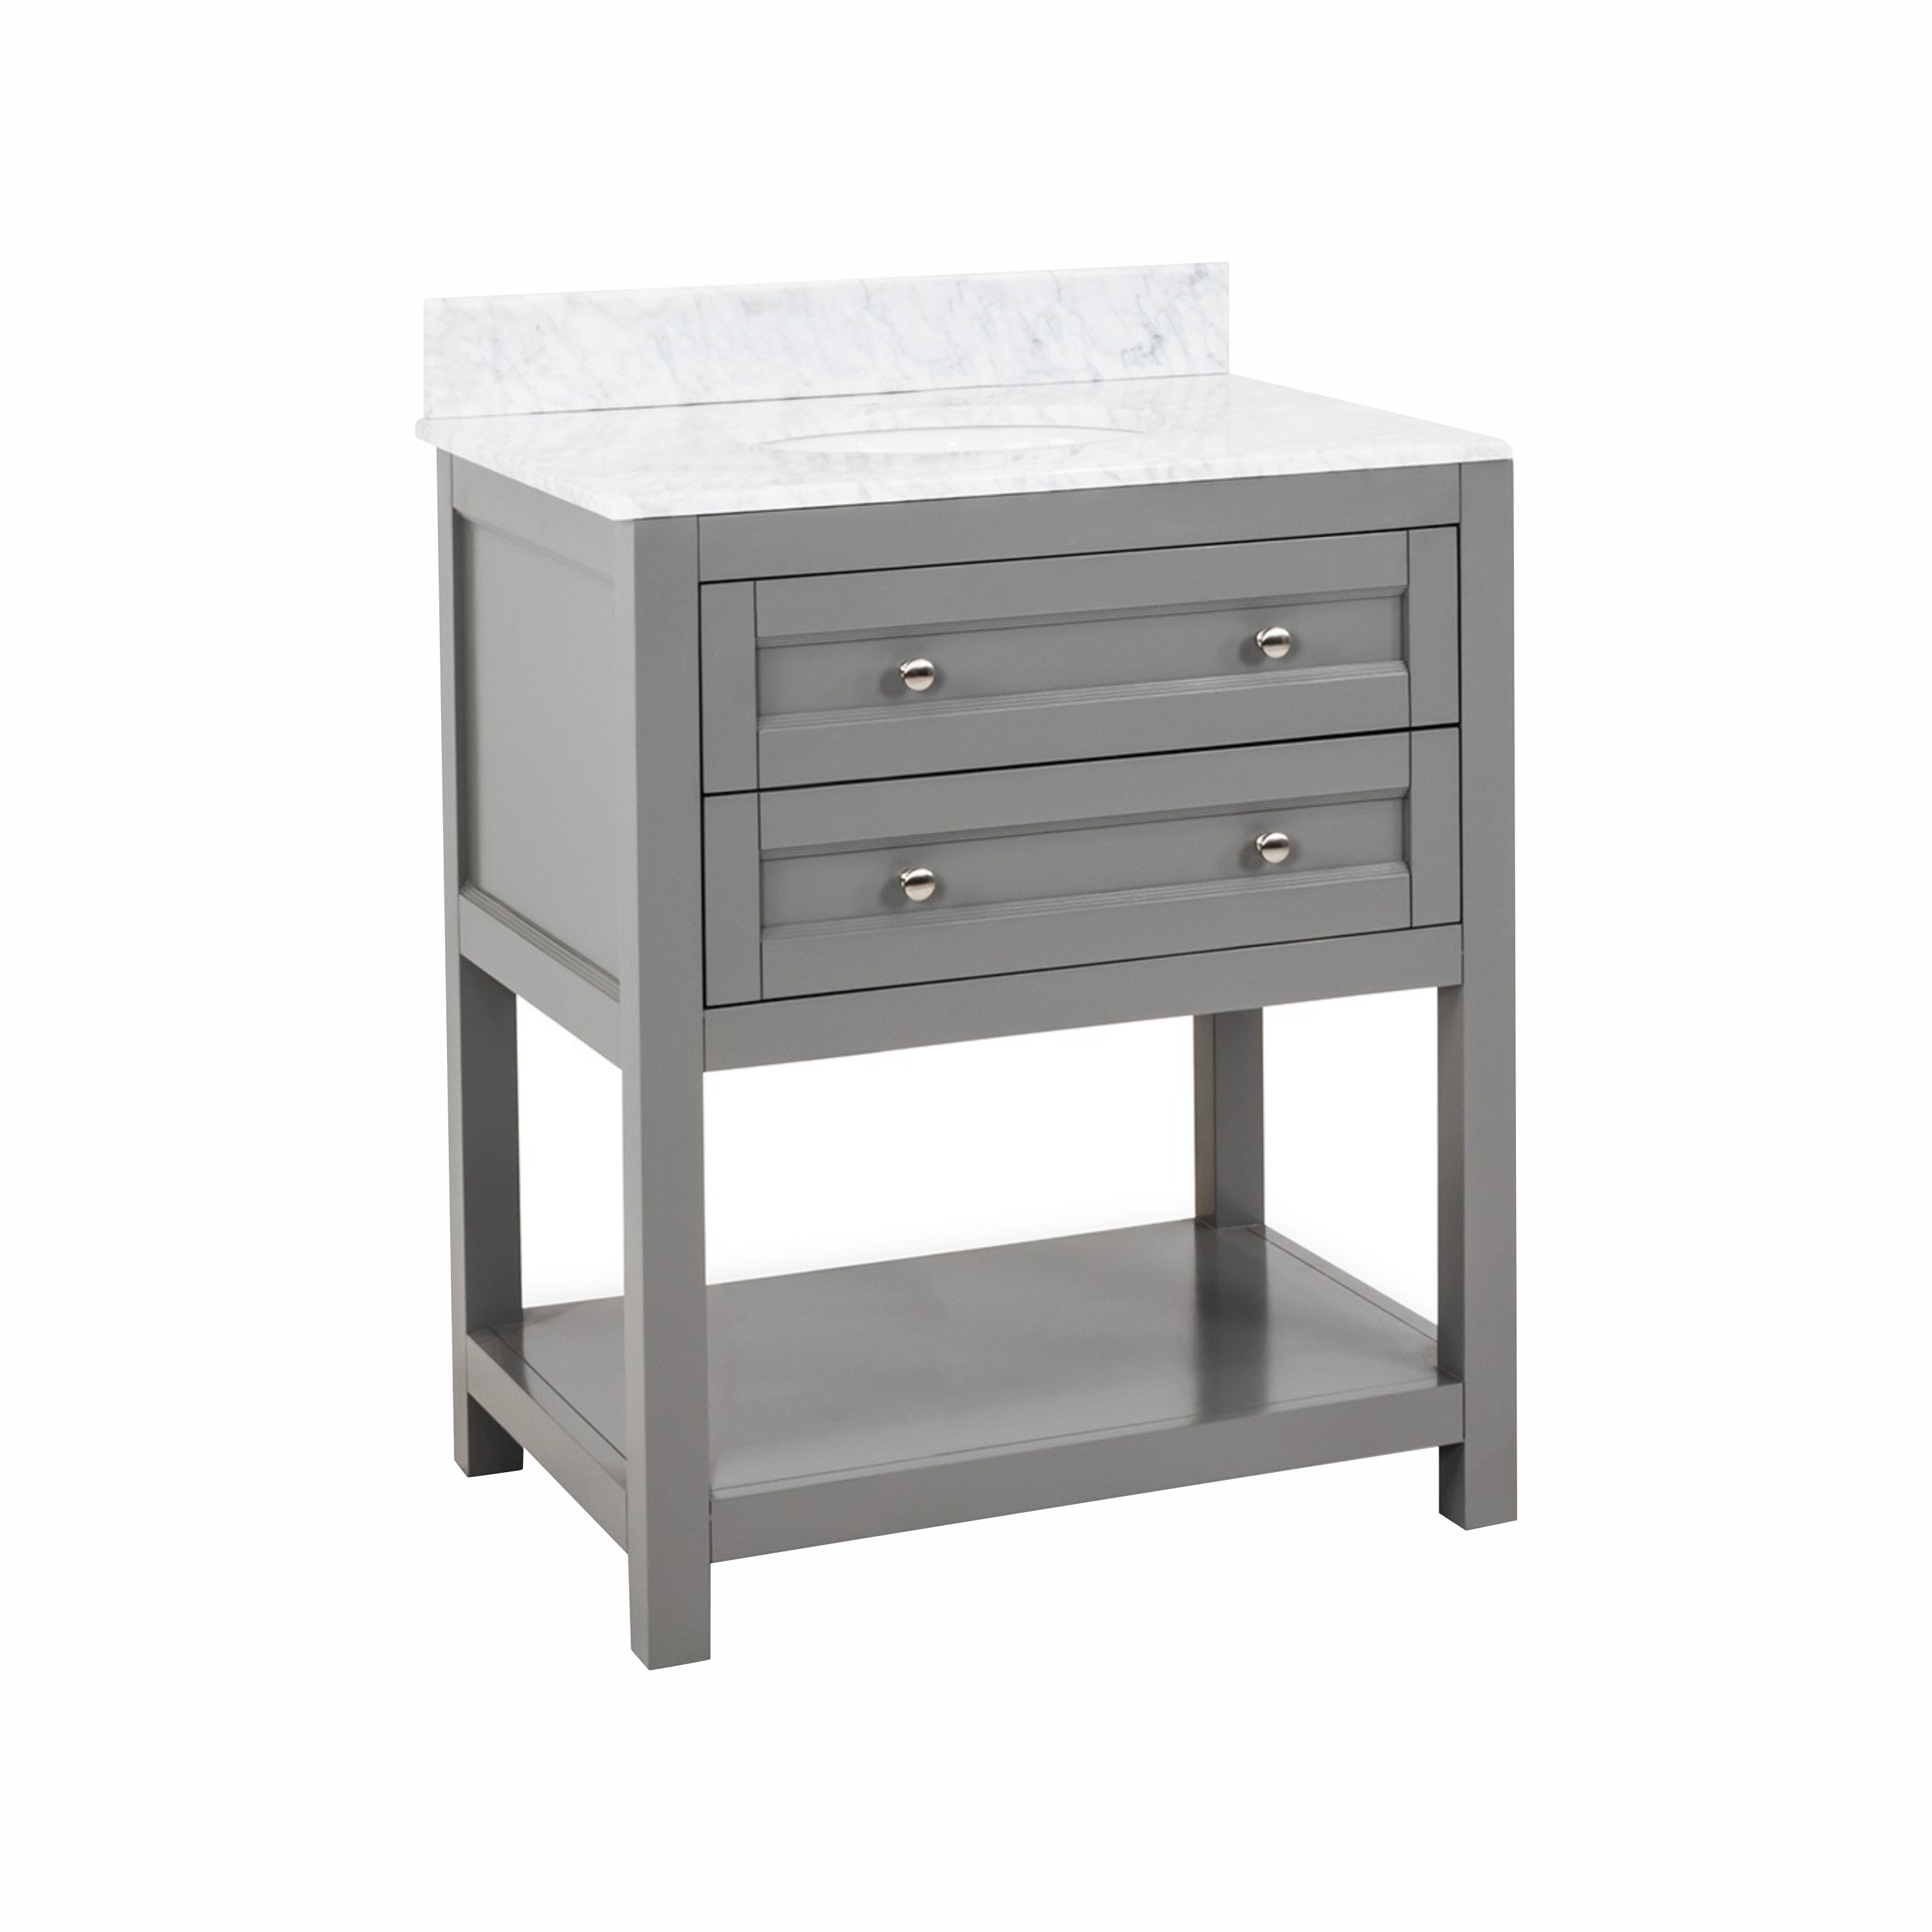 Jeffrey Alexander Astoria Modern Grey 30 Bathroom Vanity Cabinet With Carrera White Marble Countertop And Sink Bowl